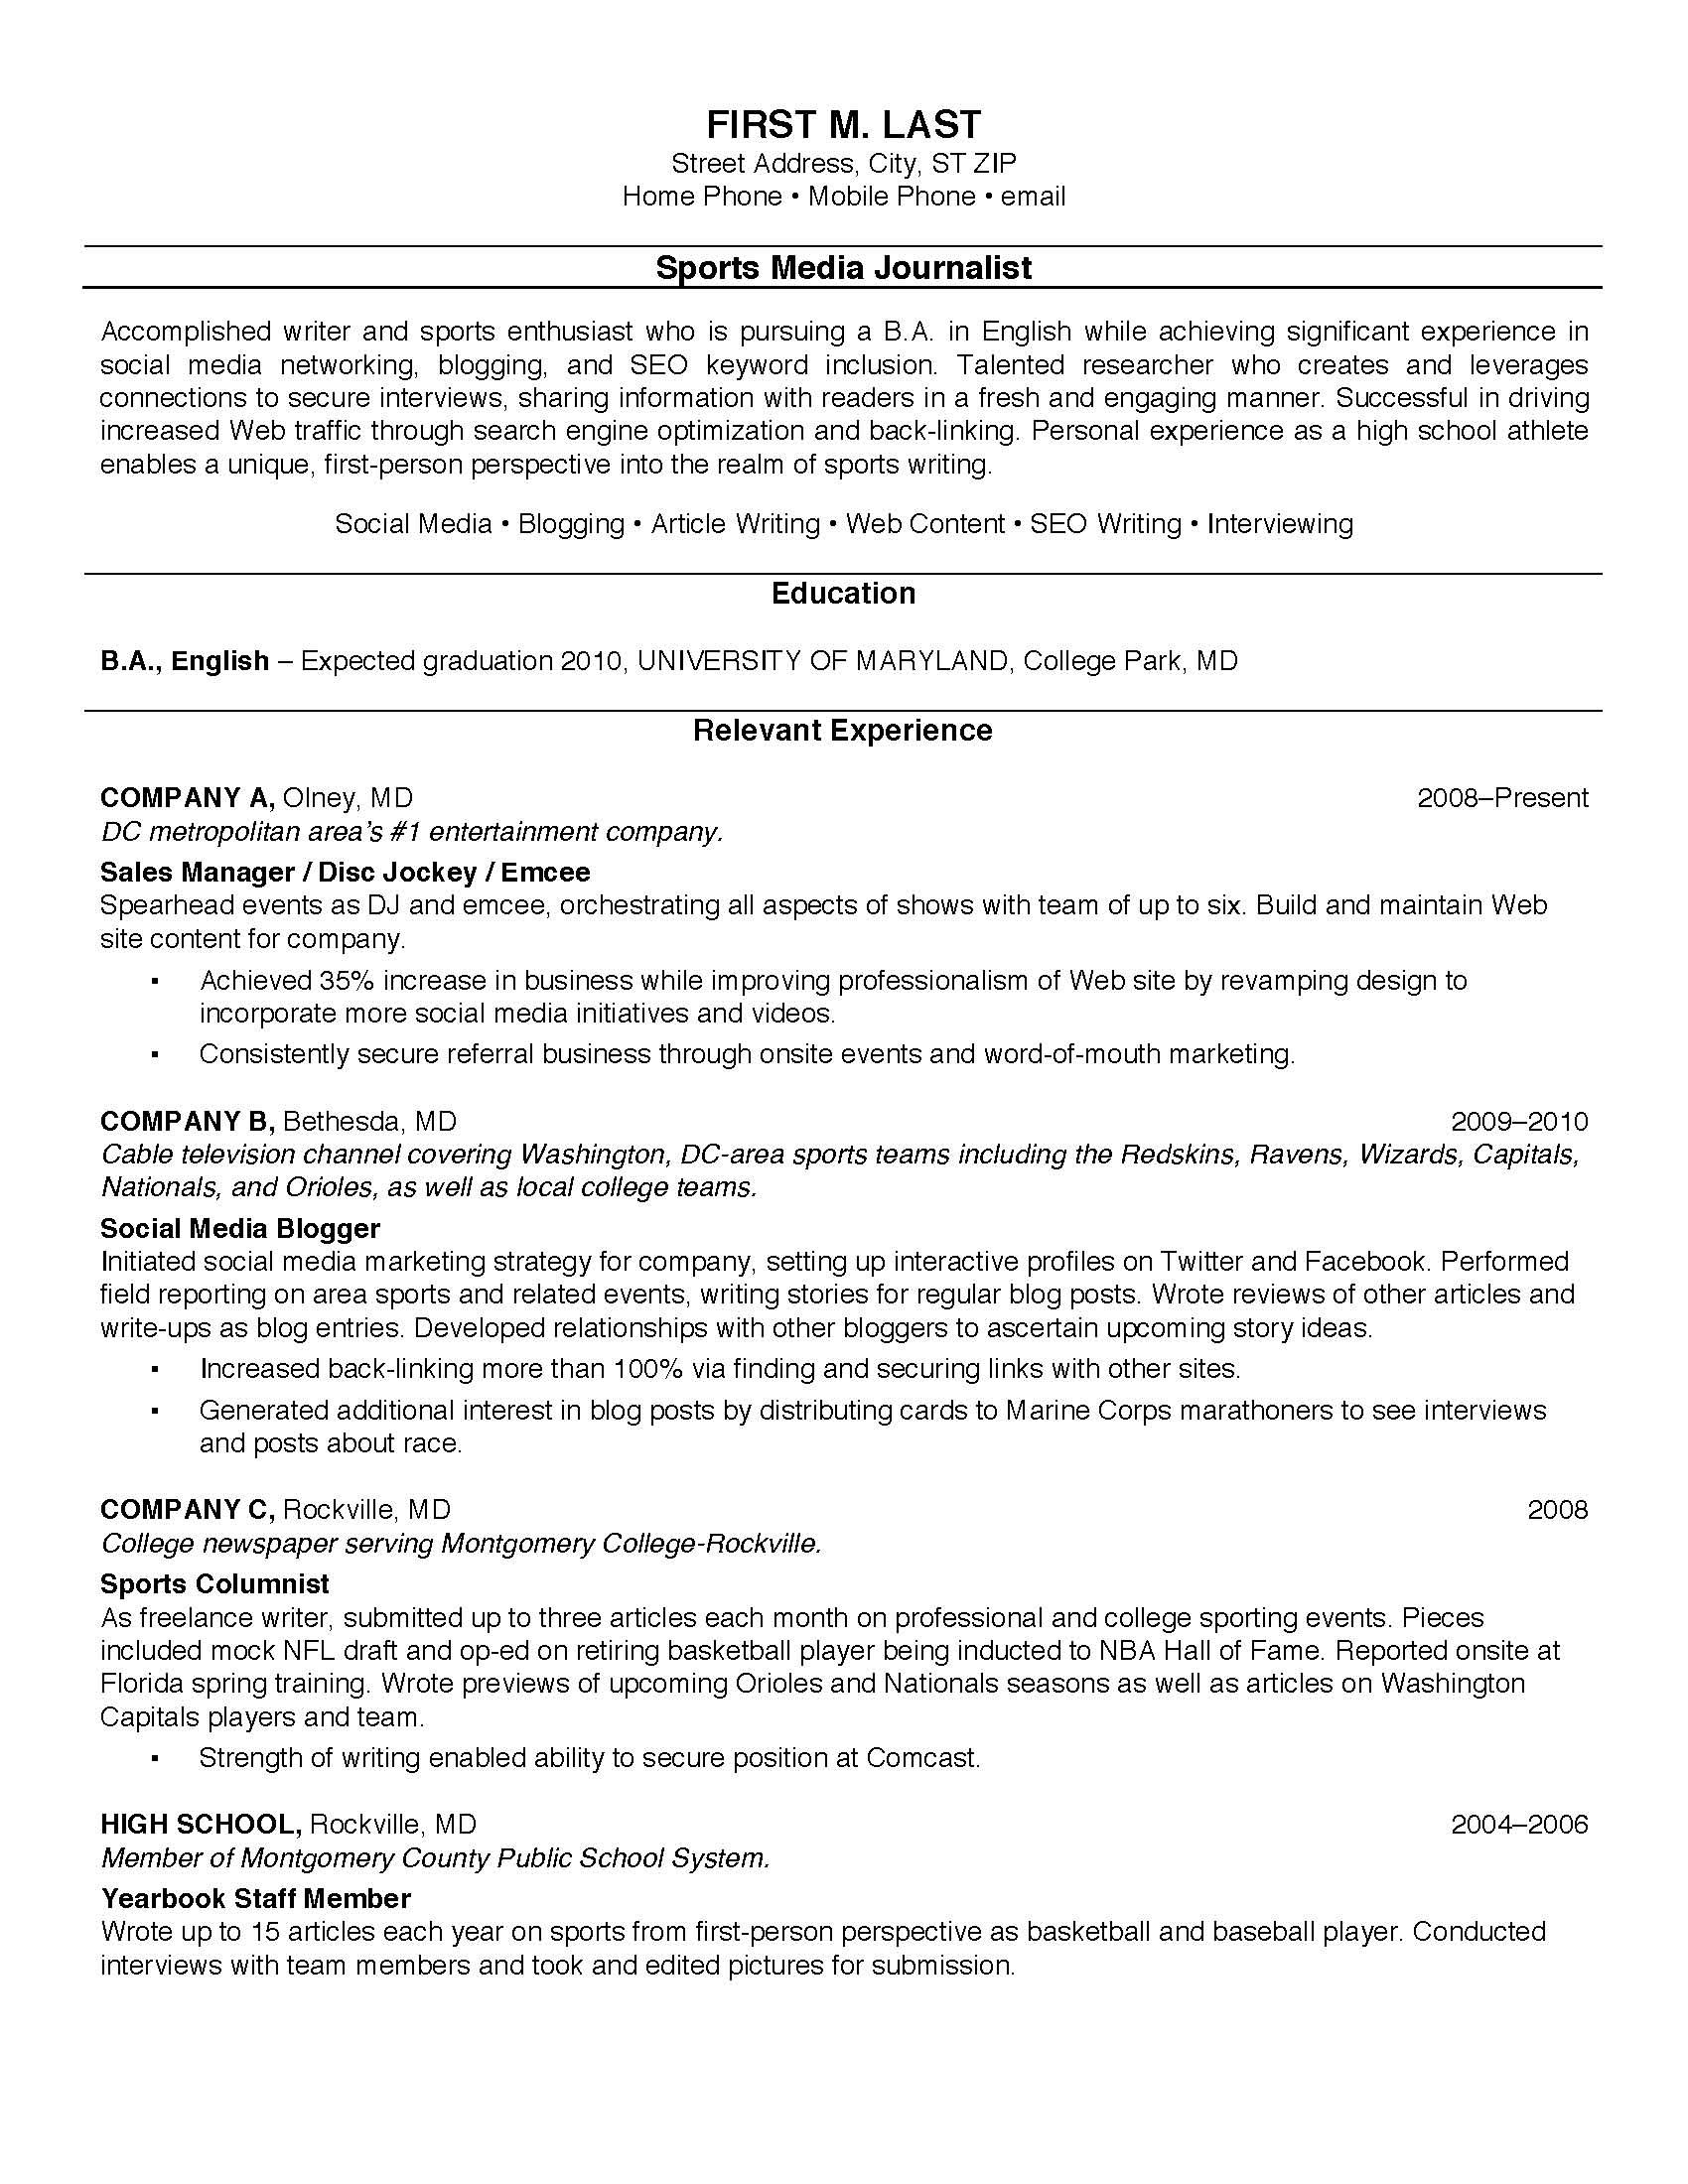 Sample Resume College Graduate Fascinating Job Resume Examples For College Students Job Resume Examples For .